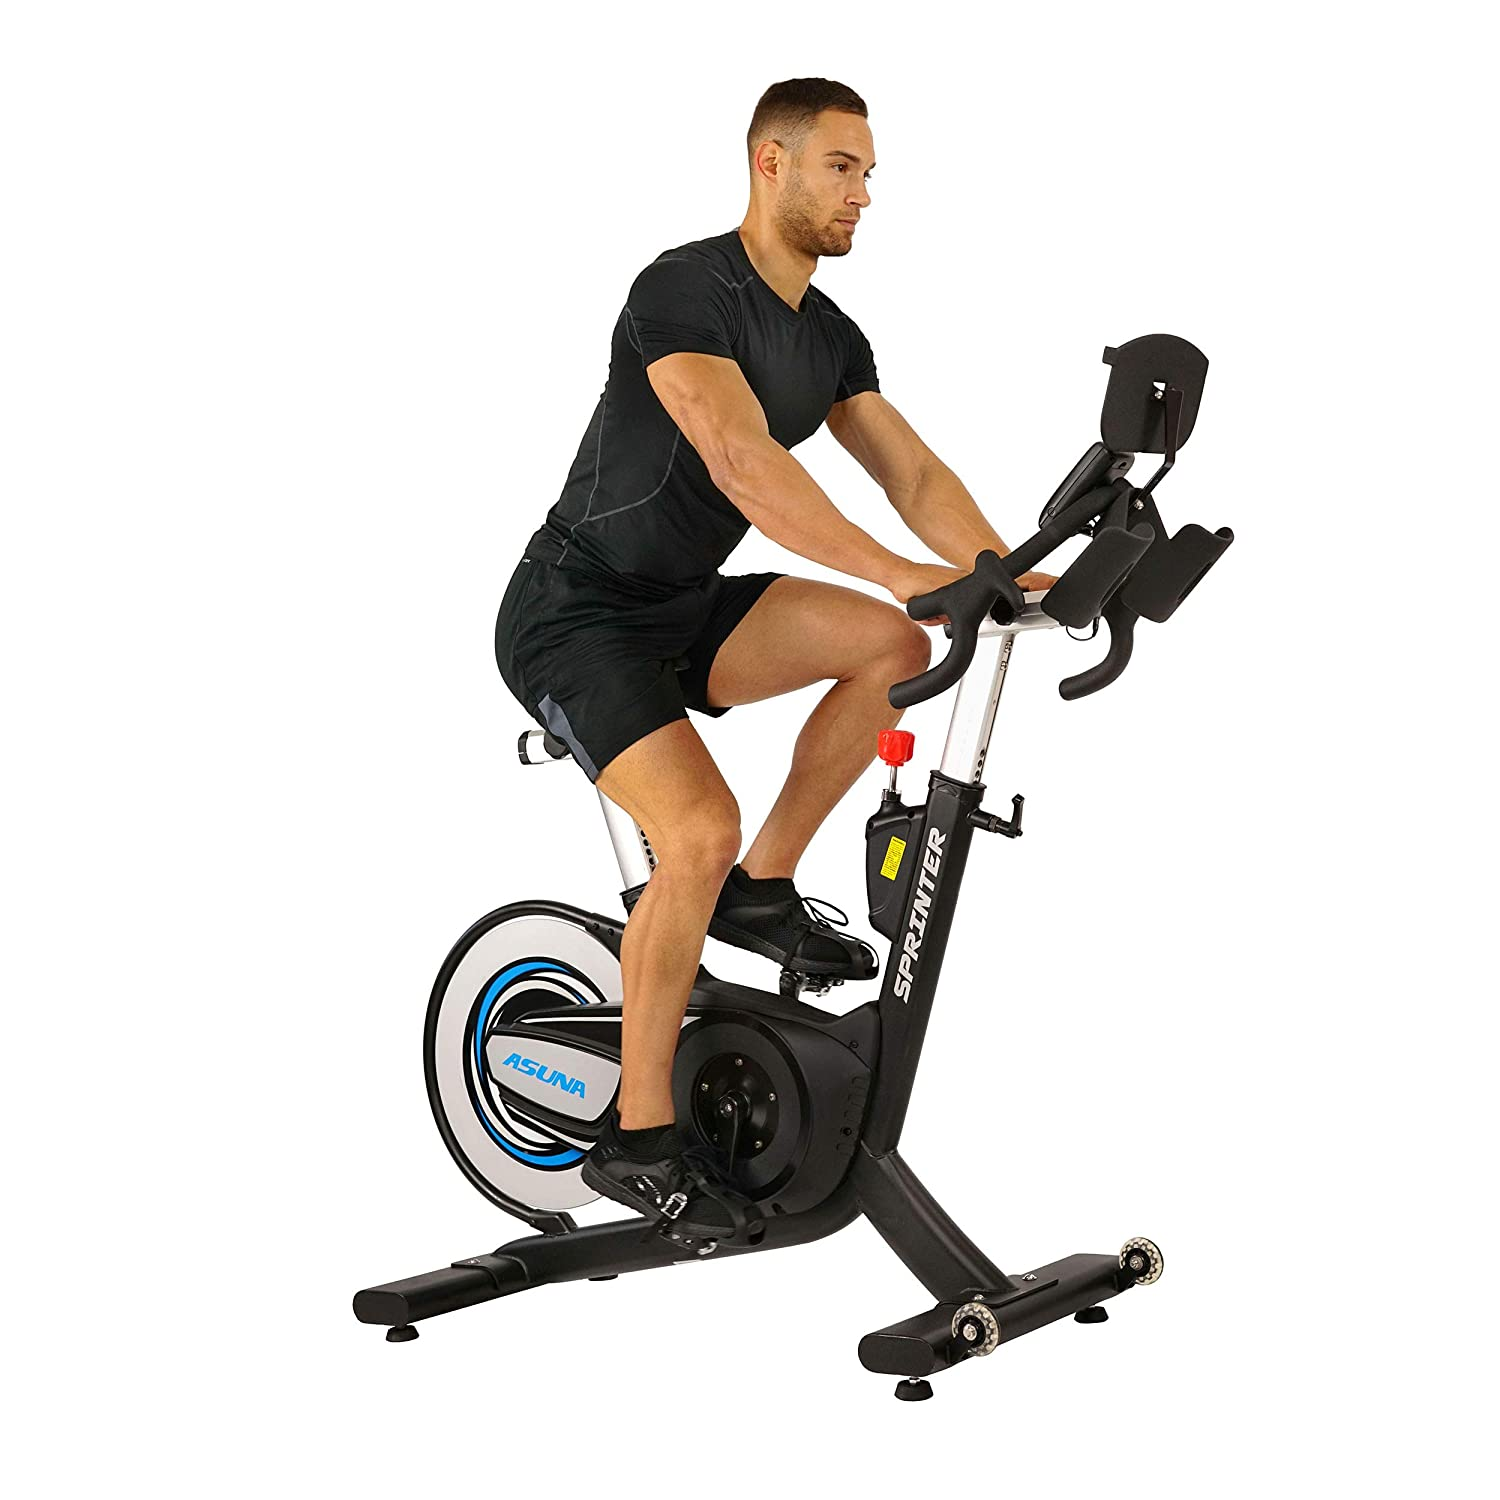 Sprinter Cycle Exercise Bike - Magnetic Belt Rear Drive, 350lb Weight Capacity with RPM Cadence Sensor, Commercial Indoor Cycling Bike